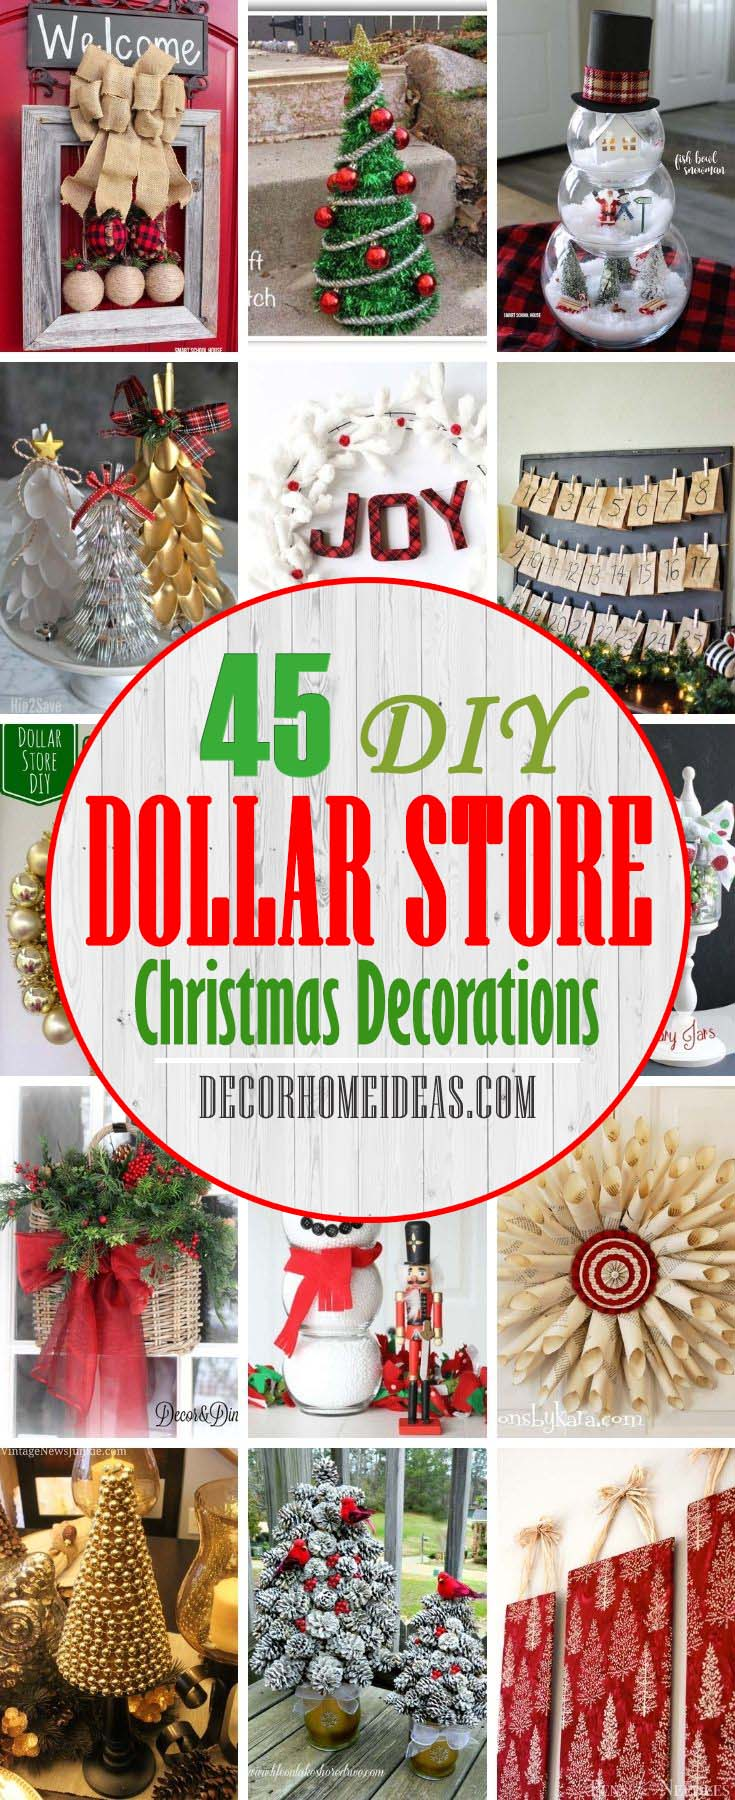 Best DIY Dollar Store Christmas Decorations. Whether you're planning a downhome family celebration and want some vintage or rustic decor, or you just want to spruce up your old decorations, these Dollar Store decoration projects are perfect for putting the finishing touches on your holiday decorating. #decorhomeideas #dollarstore